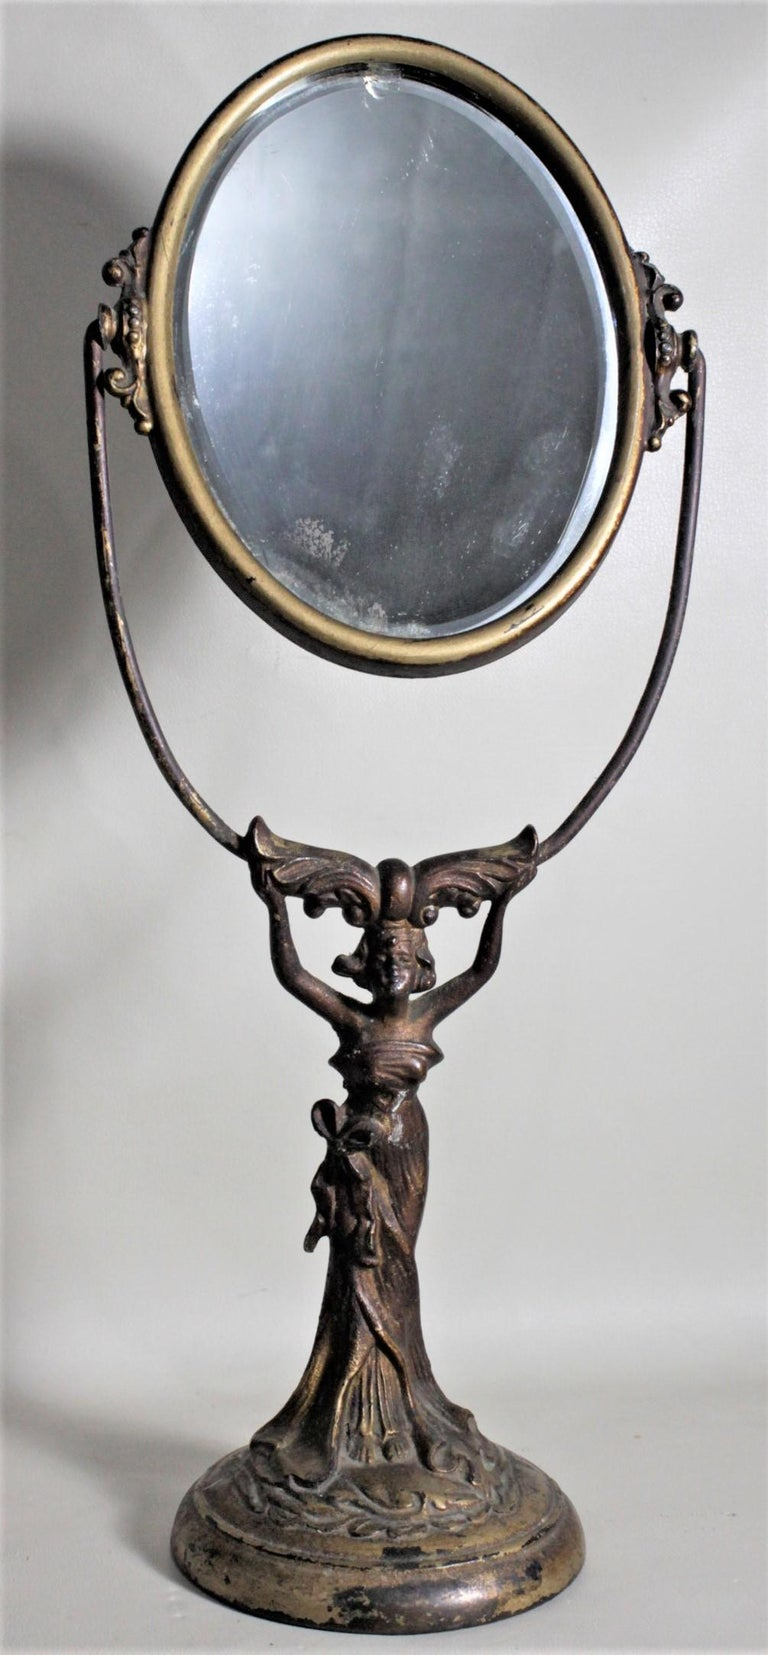 This antique cast figural ladies pedestal dresser mirror is unsigned, but presumed to have been made in France in circa 1890 in the period Art Nouveau style. The base of the mirror is a detailed cast metal woman in a flowing dress with a bronze